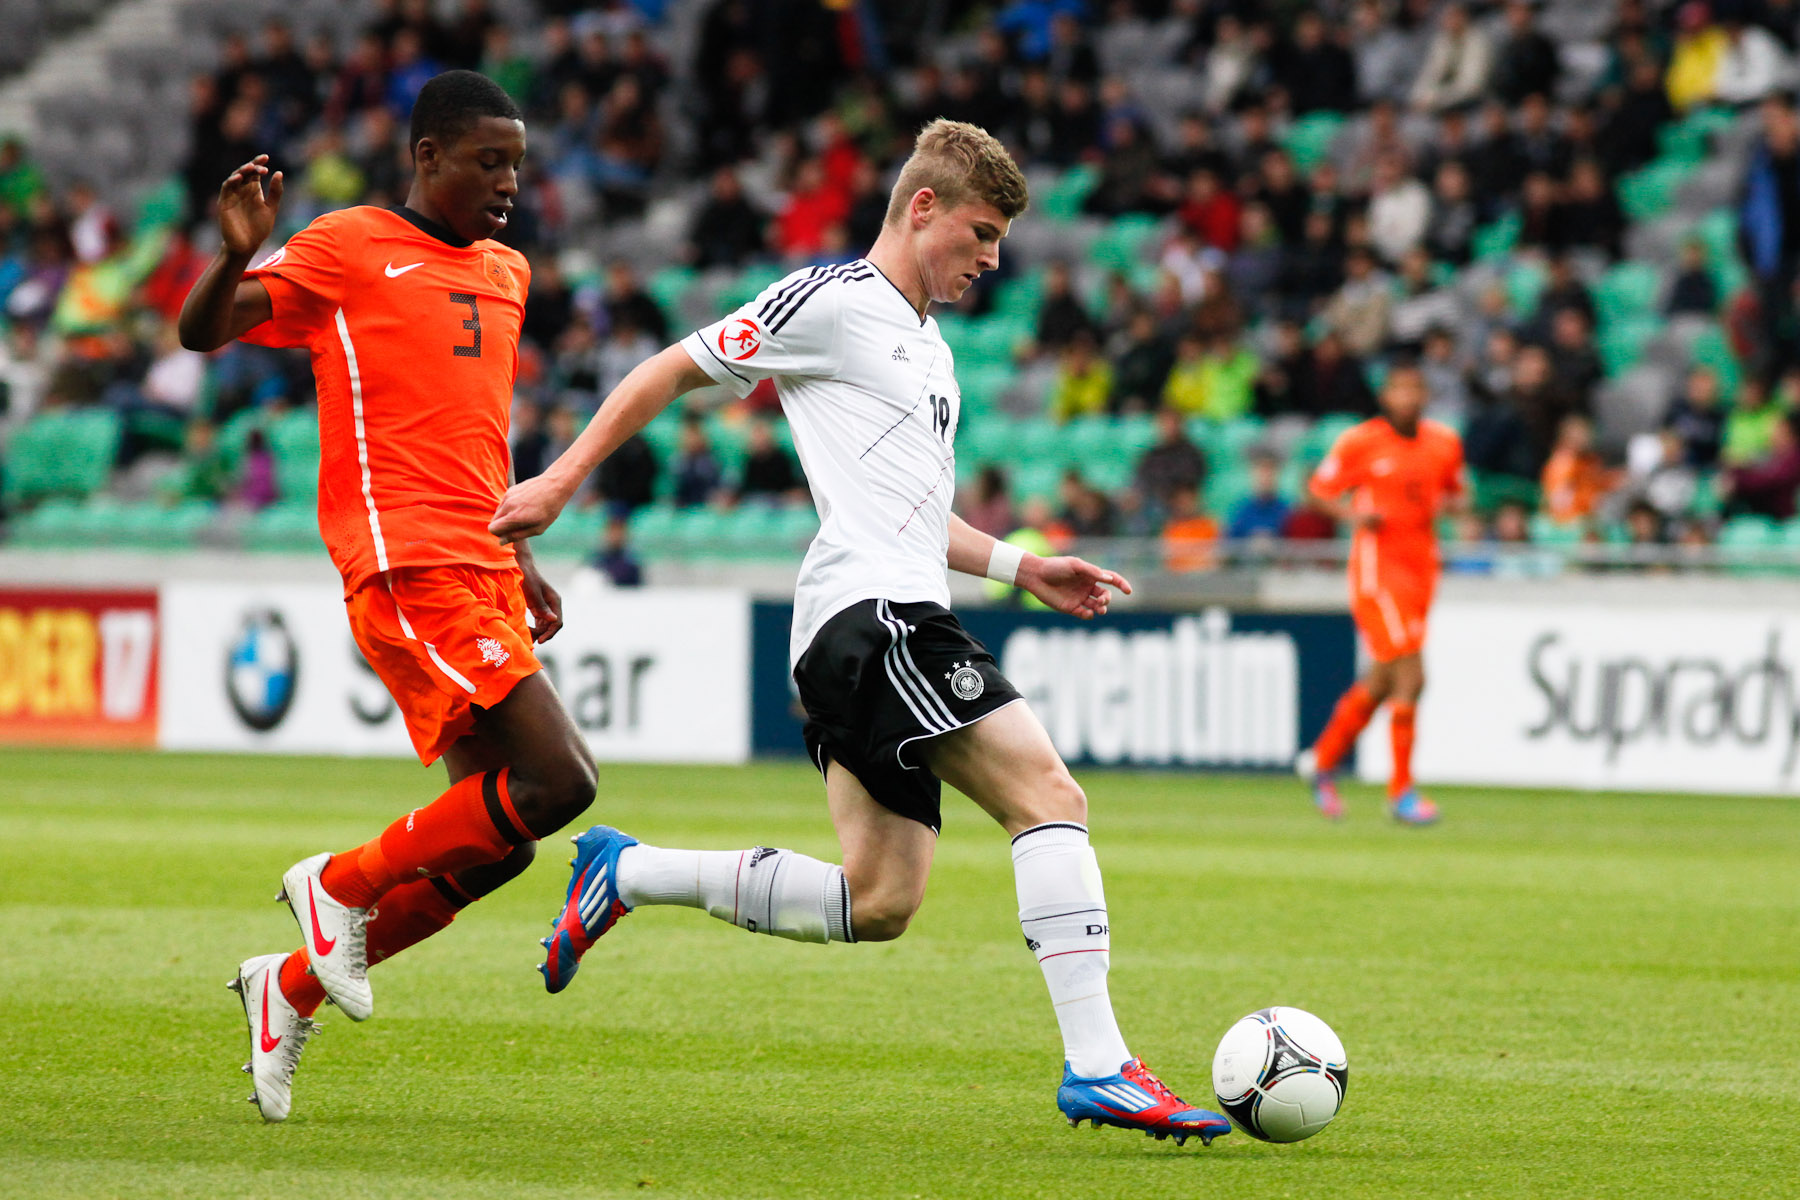 Timo Werner of Germany is challanged by Riechedly Bazoer of Netherlands during the UEFA U-17 European Championship final match between Germany and the Netherlands at the SRC Stozice Stadium in Ljubljana, Slovenia, May 16, 2012.